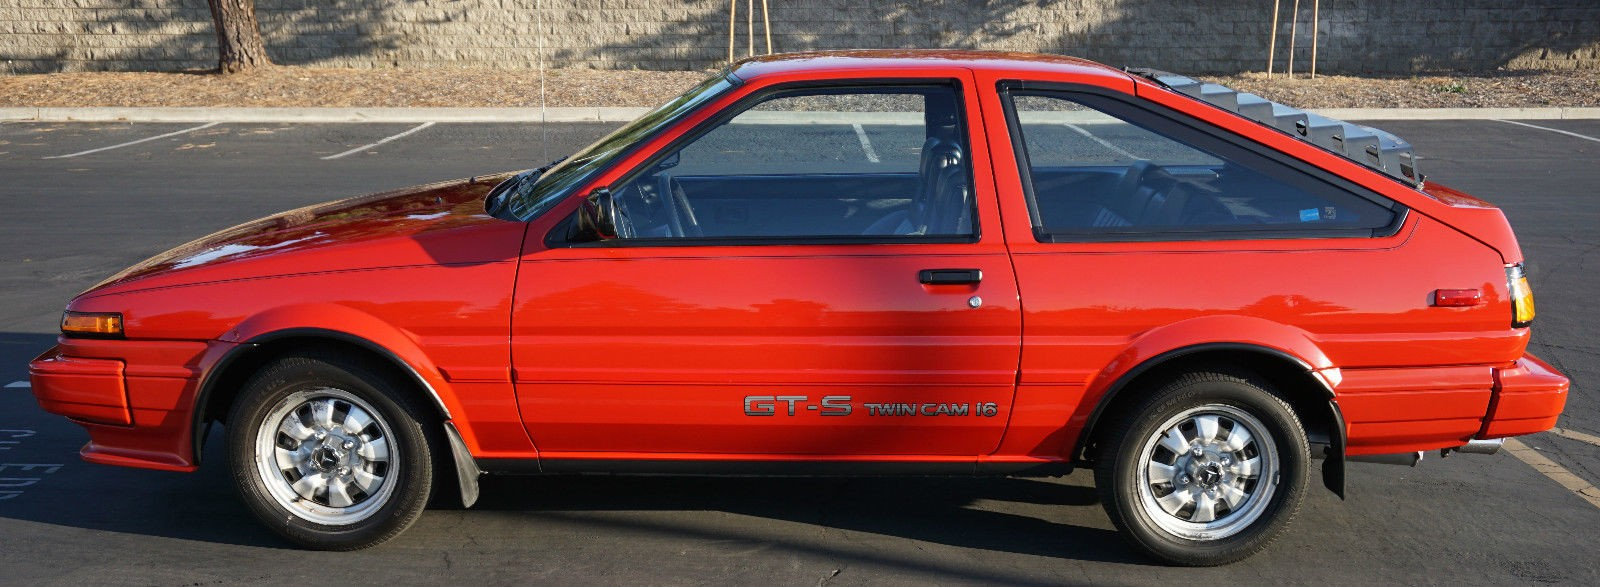 For The Purist Drifter 1986 Toyota Corolla Sport Gt S For